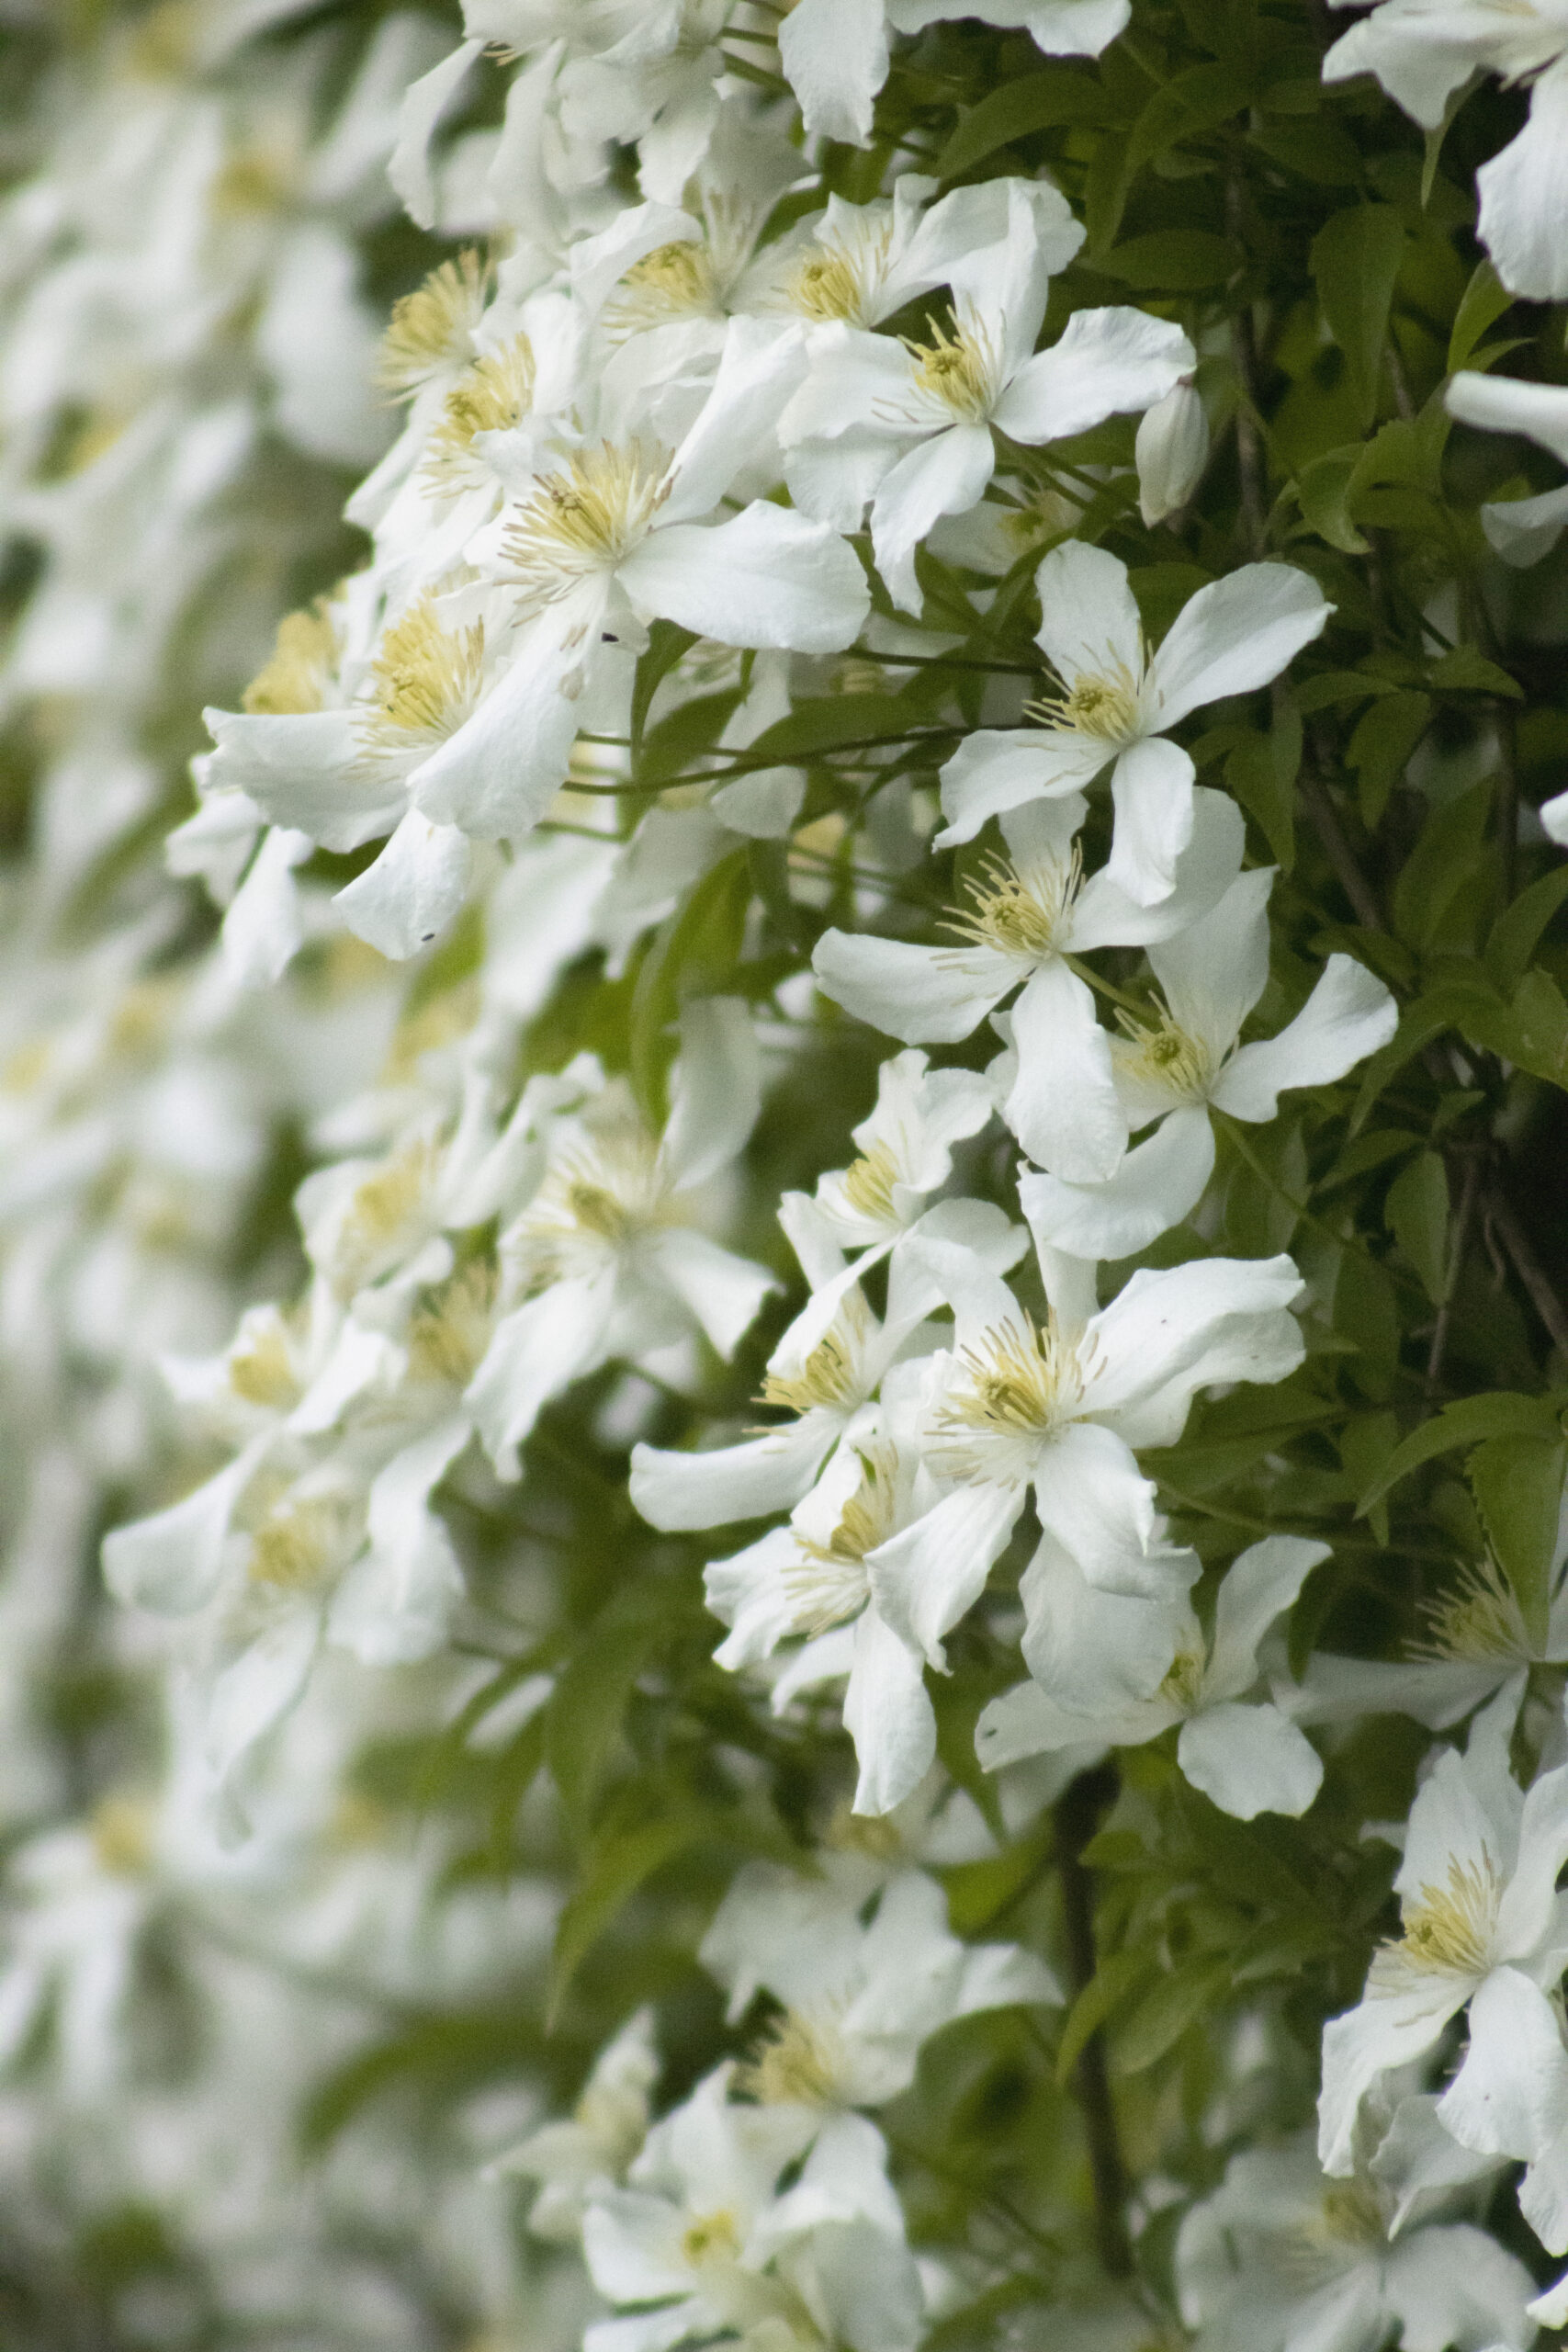 White Flowers, May 13, 2021